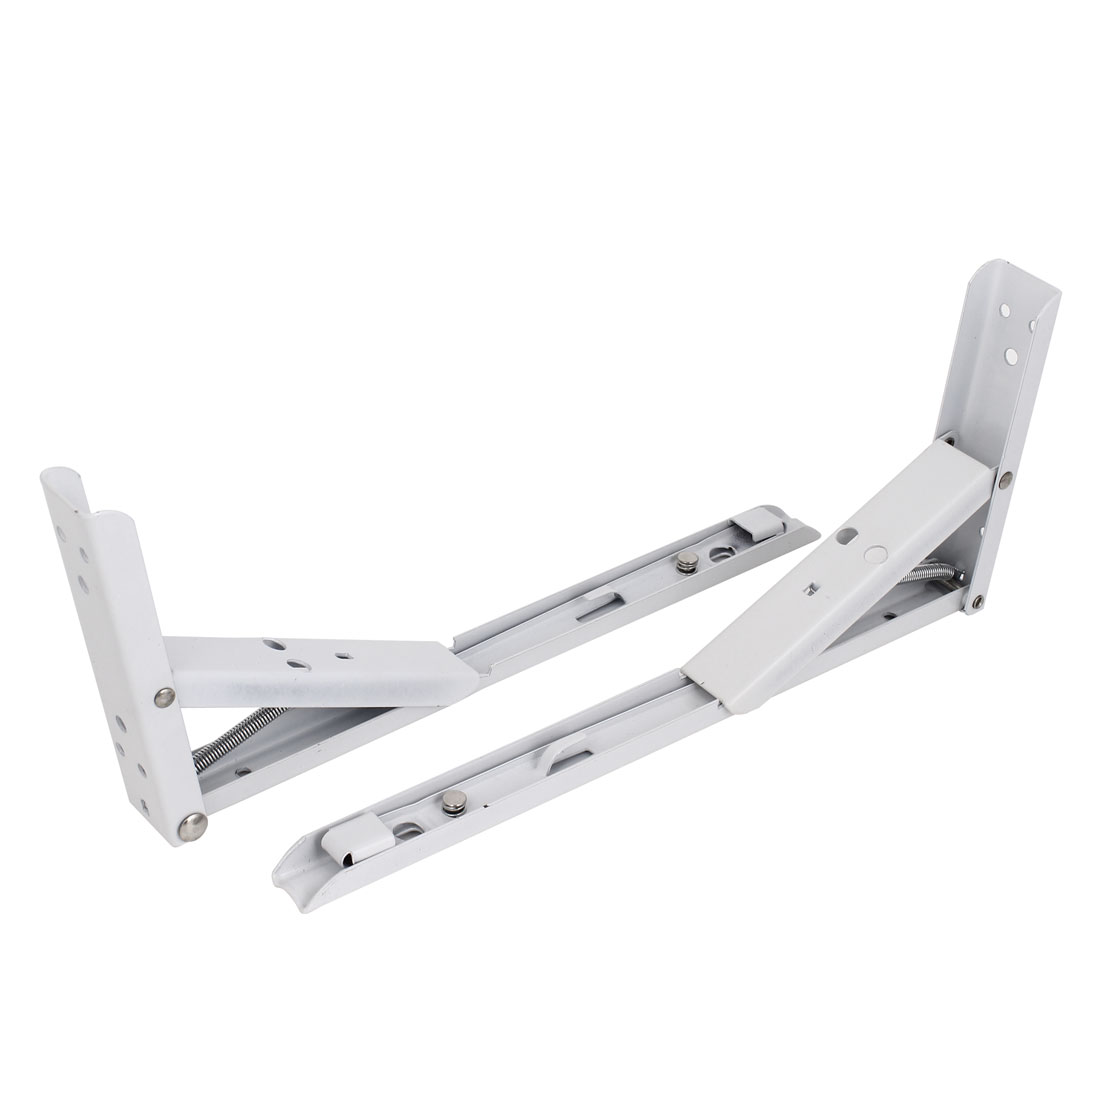 2 Pcs 30cmx13cm White Metal L Shaped Right Angle Holder Folding Shelf Brackets